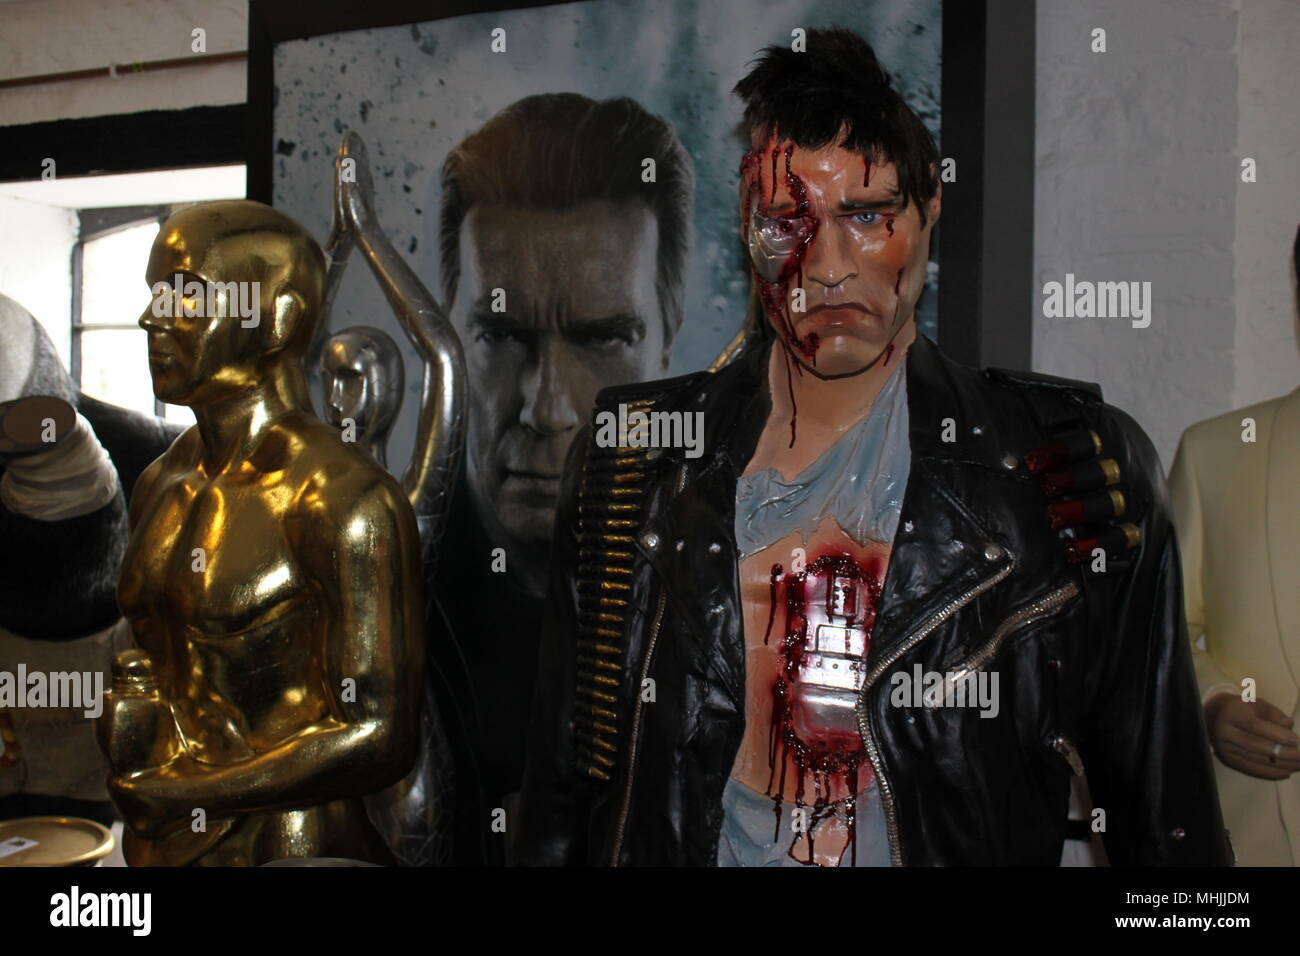 Life size Arnold Schwarzenegger resin model for sale from The Jolly Roger Limited, Bovey Tracey, Devon, England, UK, PETER GRANT - Stock Image